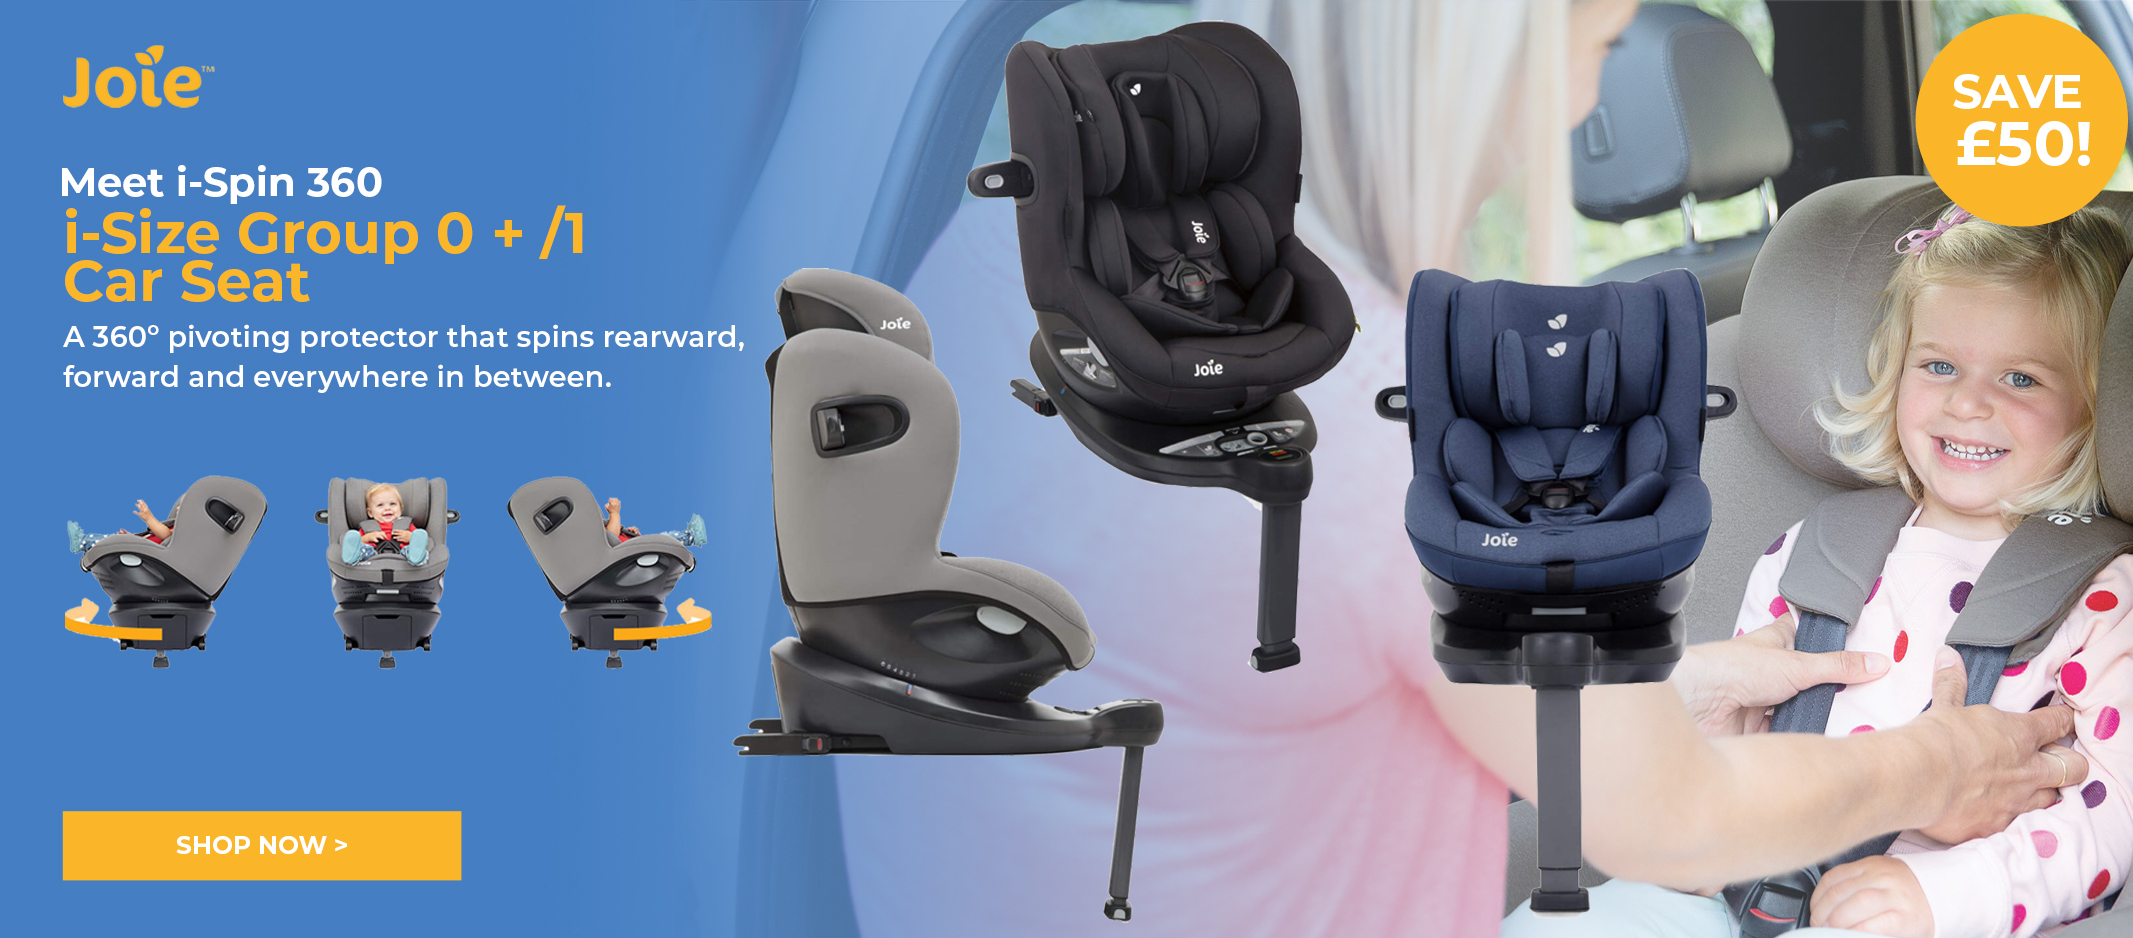 Joie i-Spin 360 Car Seat